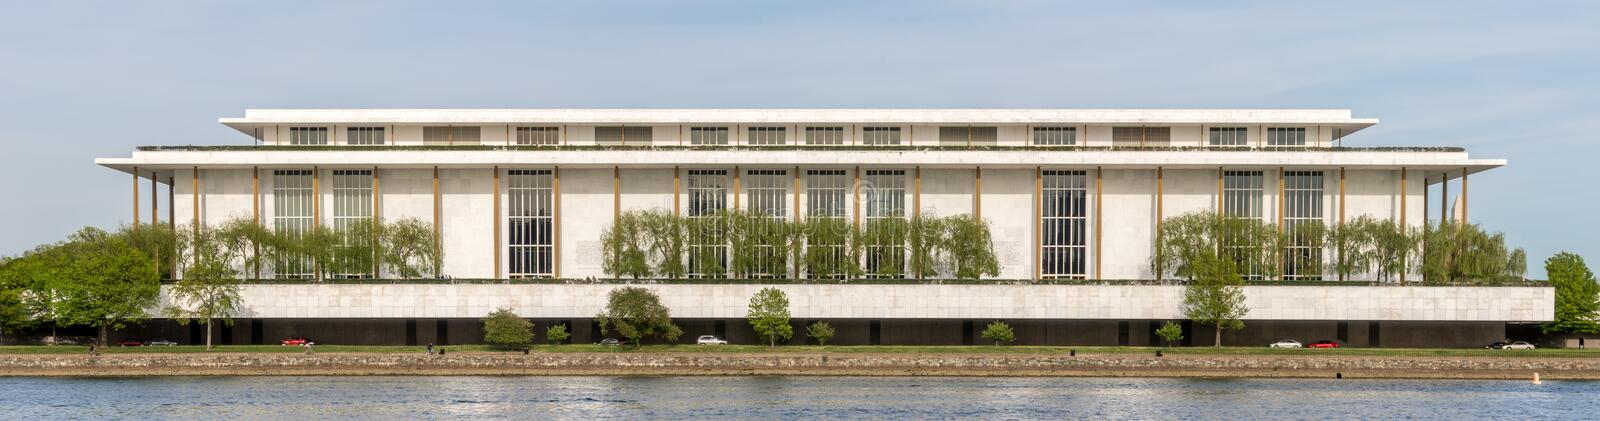 John F. Kennedy Center for the Performing Arts in Washington DC royalty free stock photography